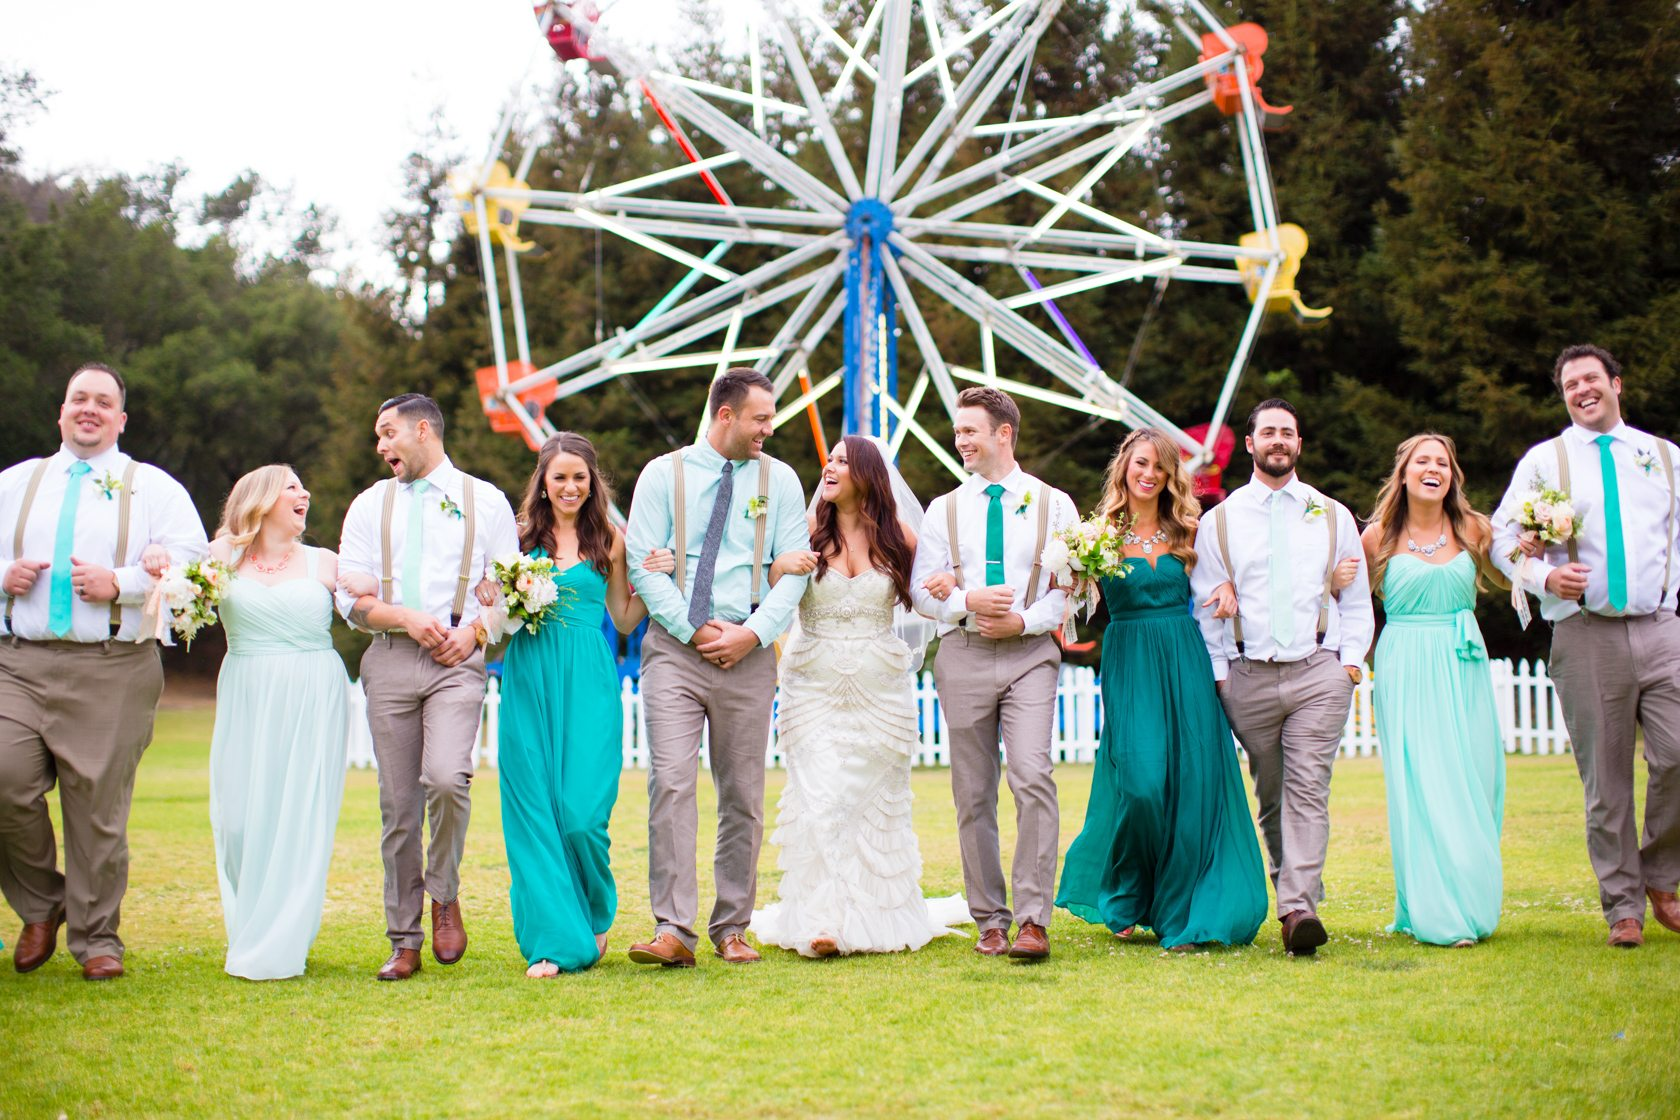 The_Printed_Palette_Wedding_at_Calamigos_Ranch_009.jpg